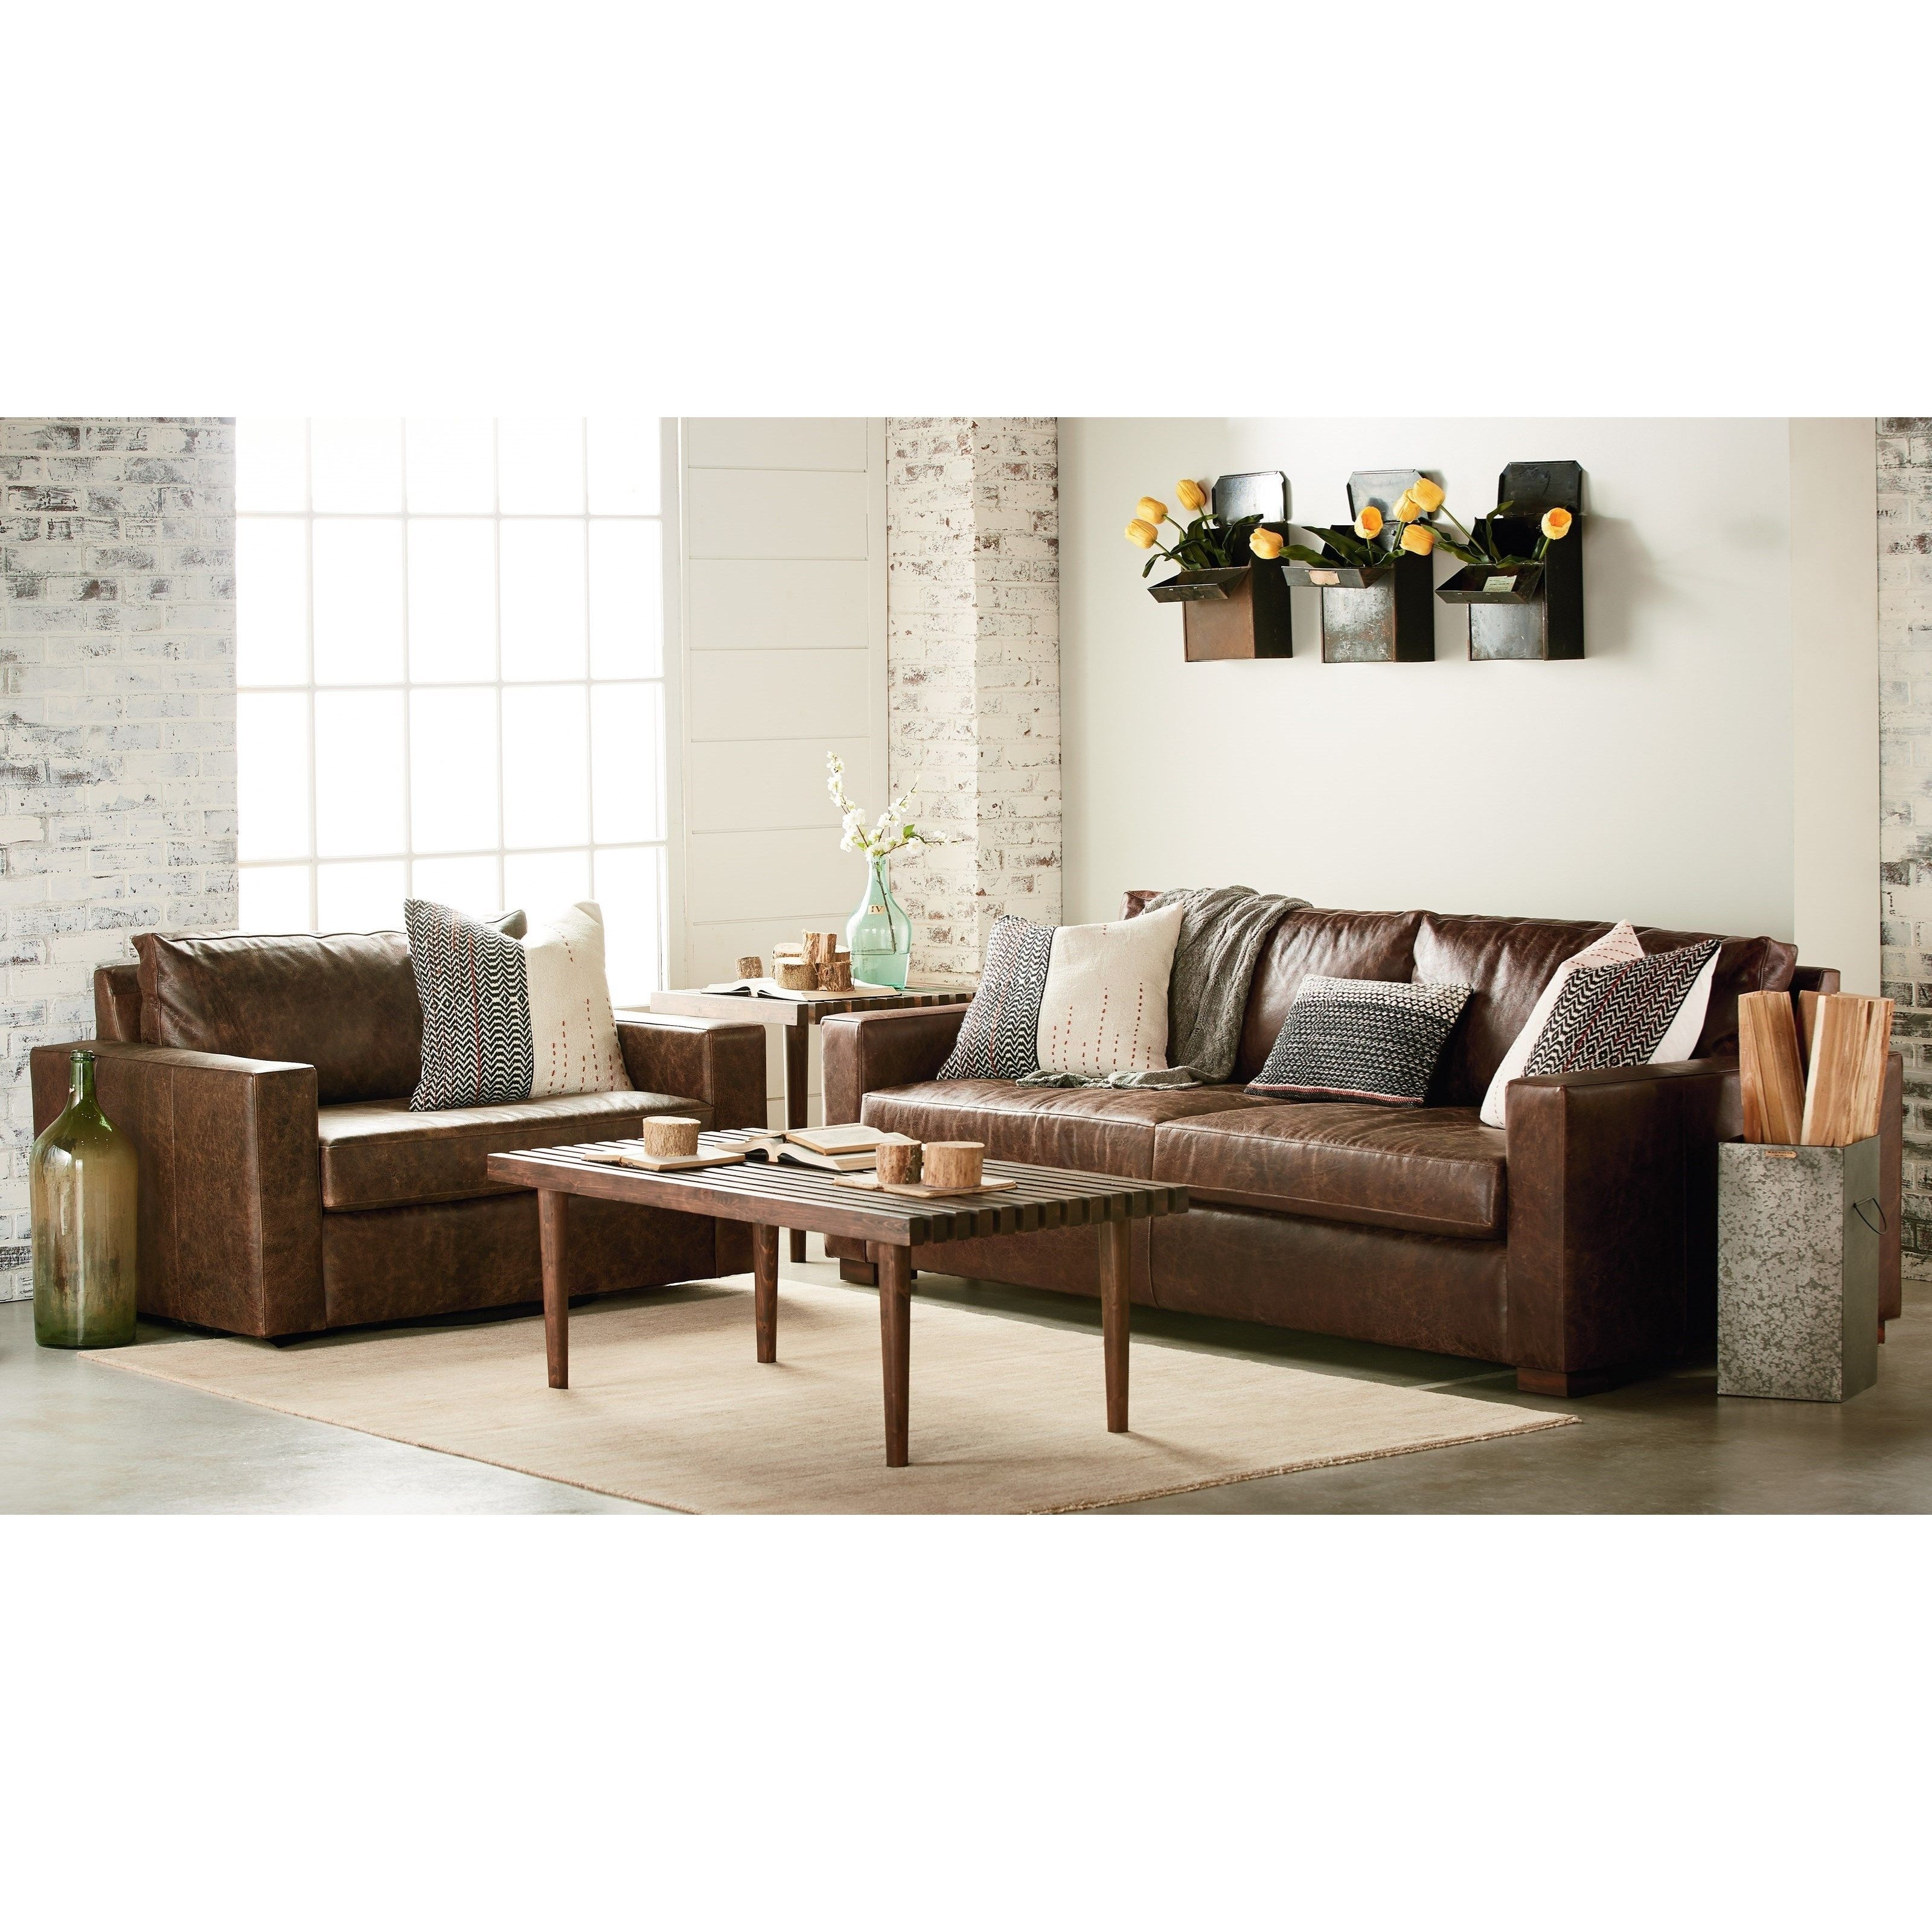 Magnolia Furniture Leather Sofa   Baci Living Room Inside Magnolia Home Homestead 3 Piece Sectionals By Joanna Gaines (Image 14 of 25)